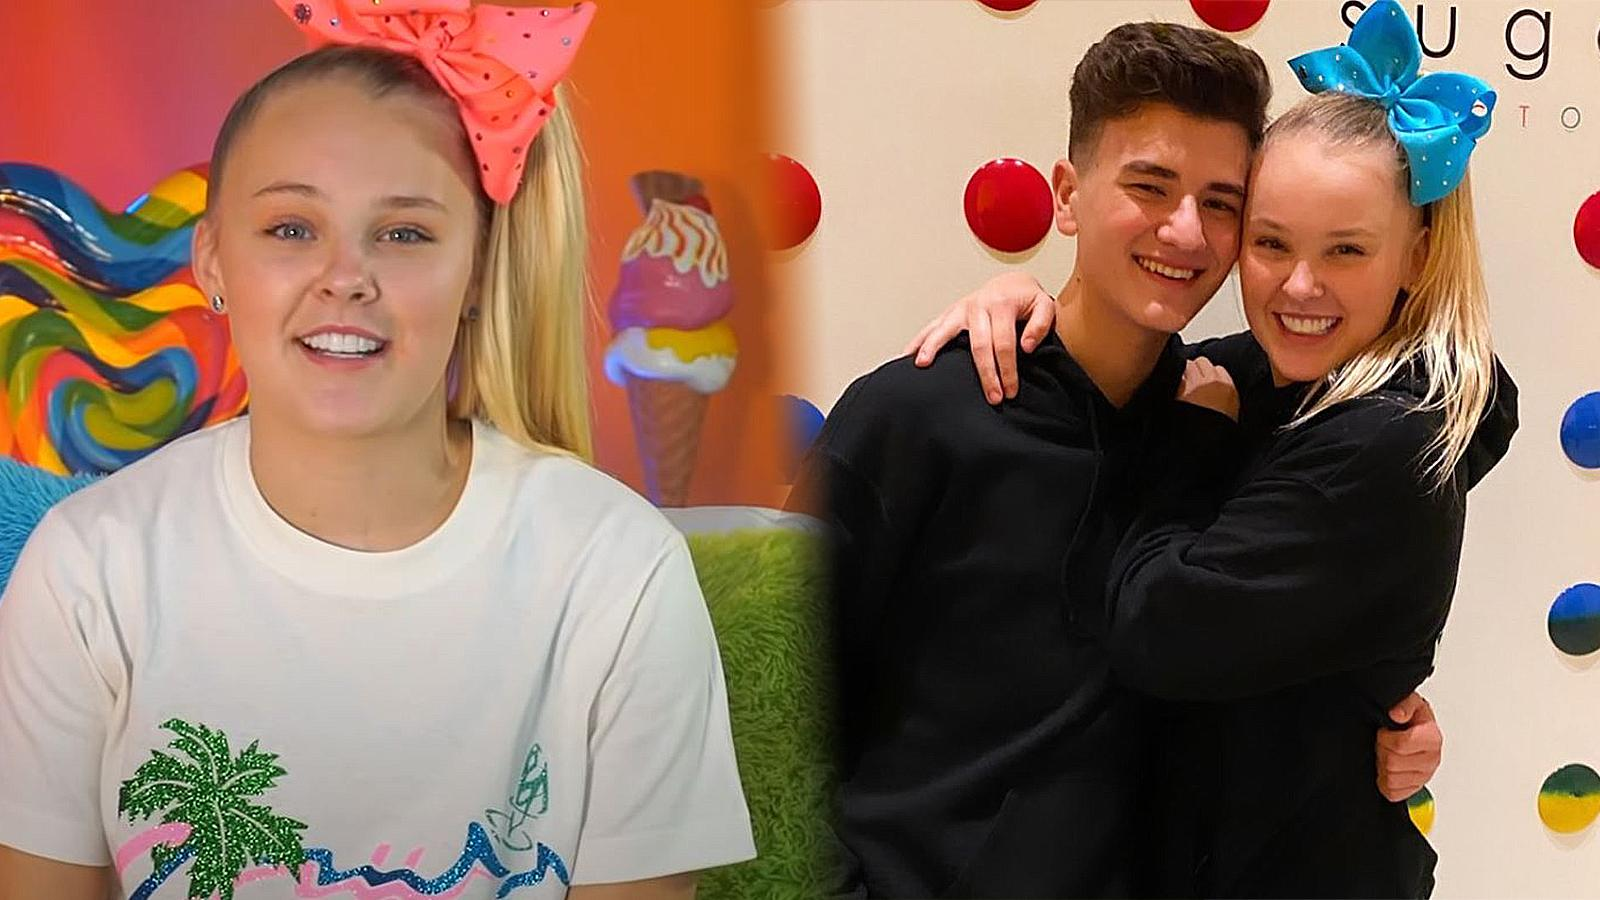 Jojo Siwa Calls Her Fans Out Over Sending Hate To Her Ex Mark Bontempo